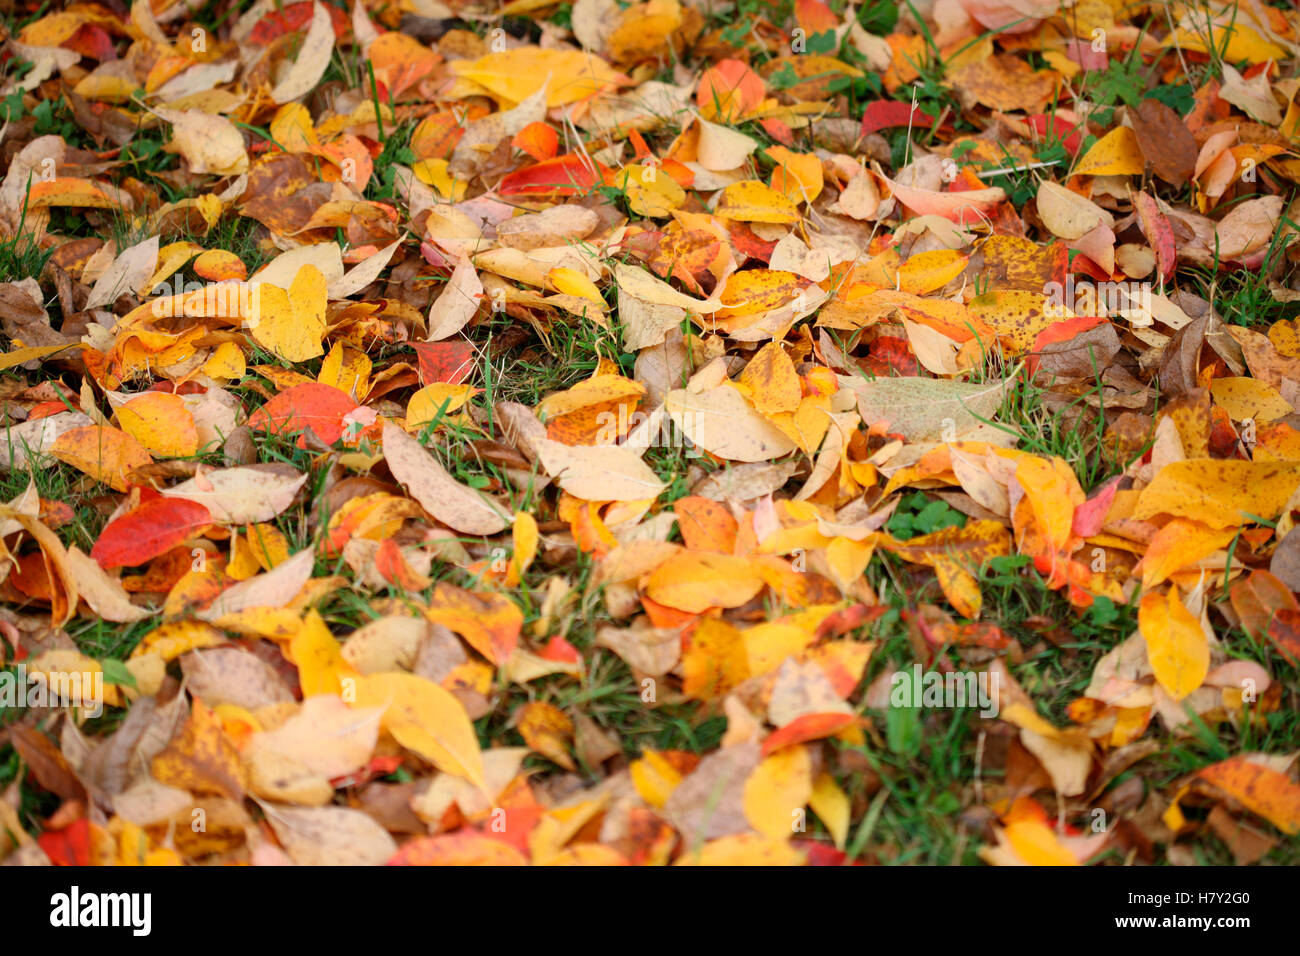 fallen autumn leaves decaying on the ground - regenerate Jane Ann Butler Photography JABP1689 - Stock Image